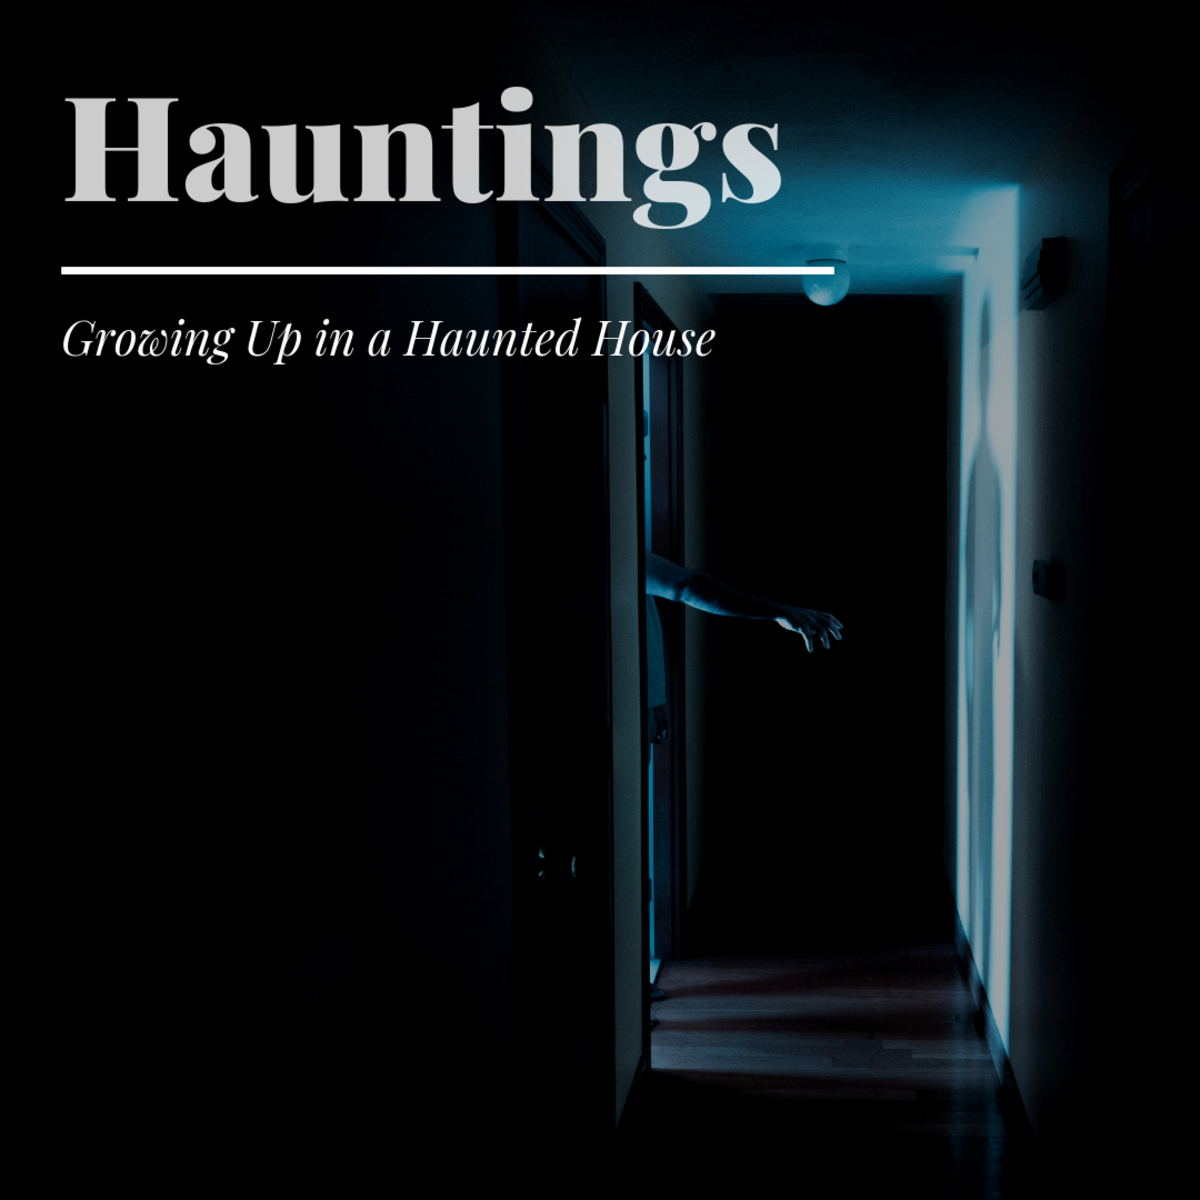 What Is It Really Like to Live in a Haunted House?